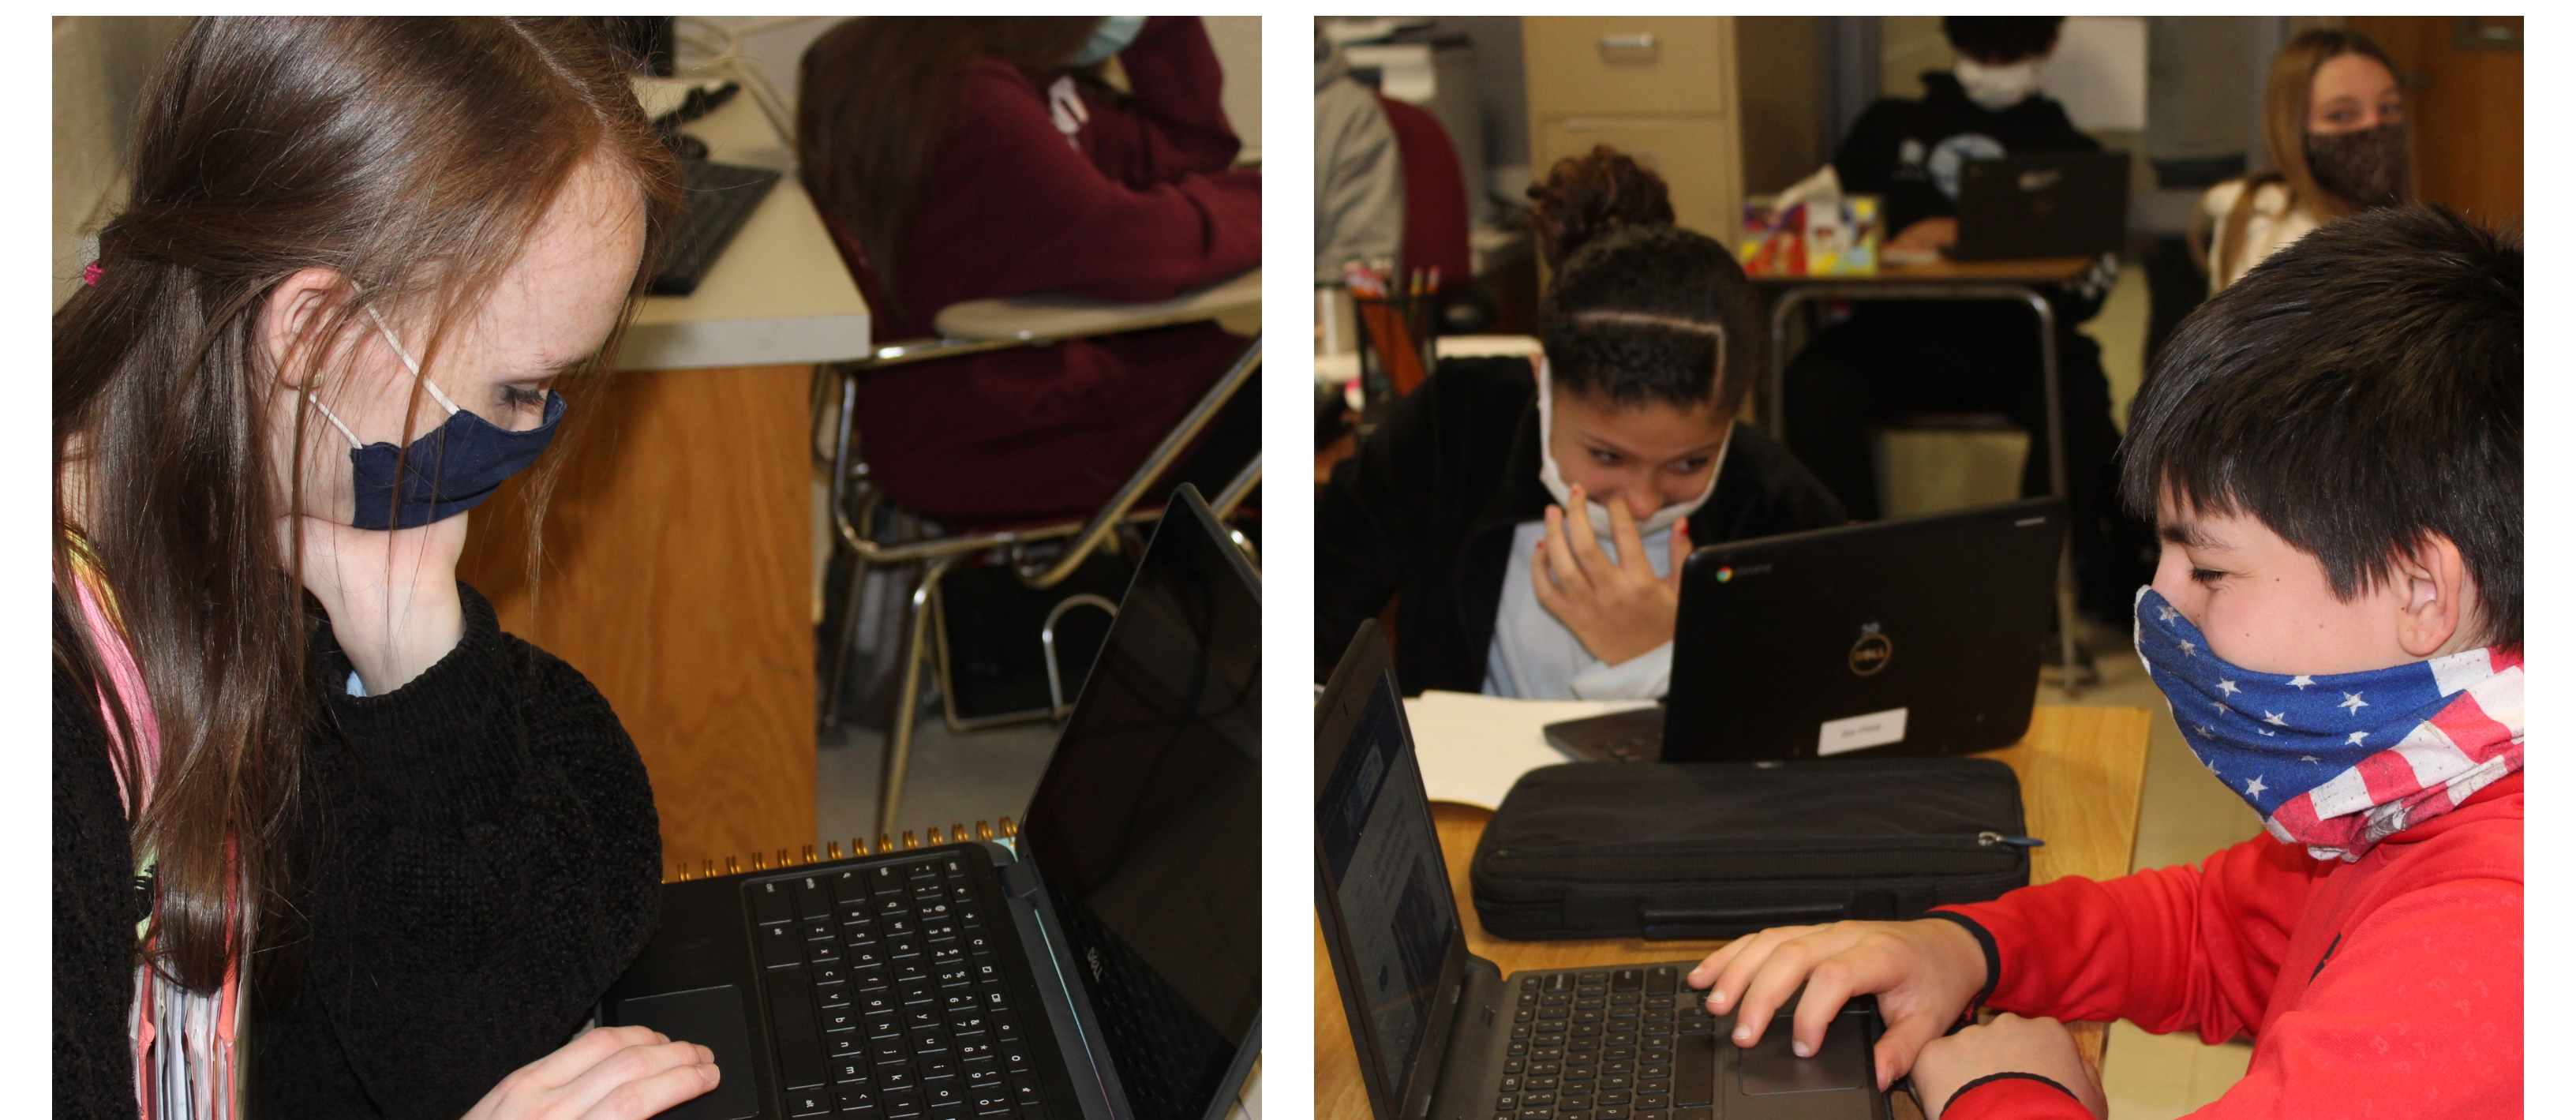 Students working on assignments